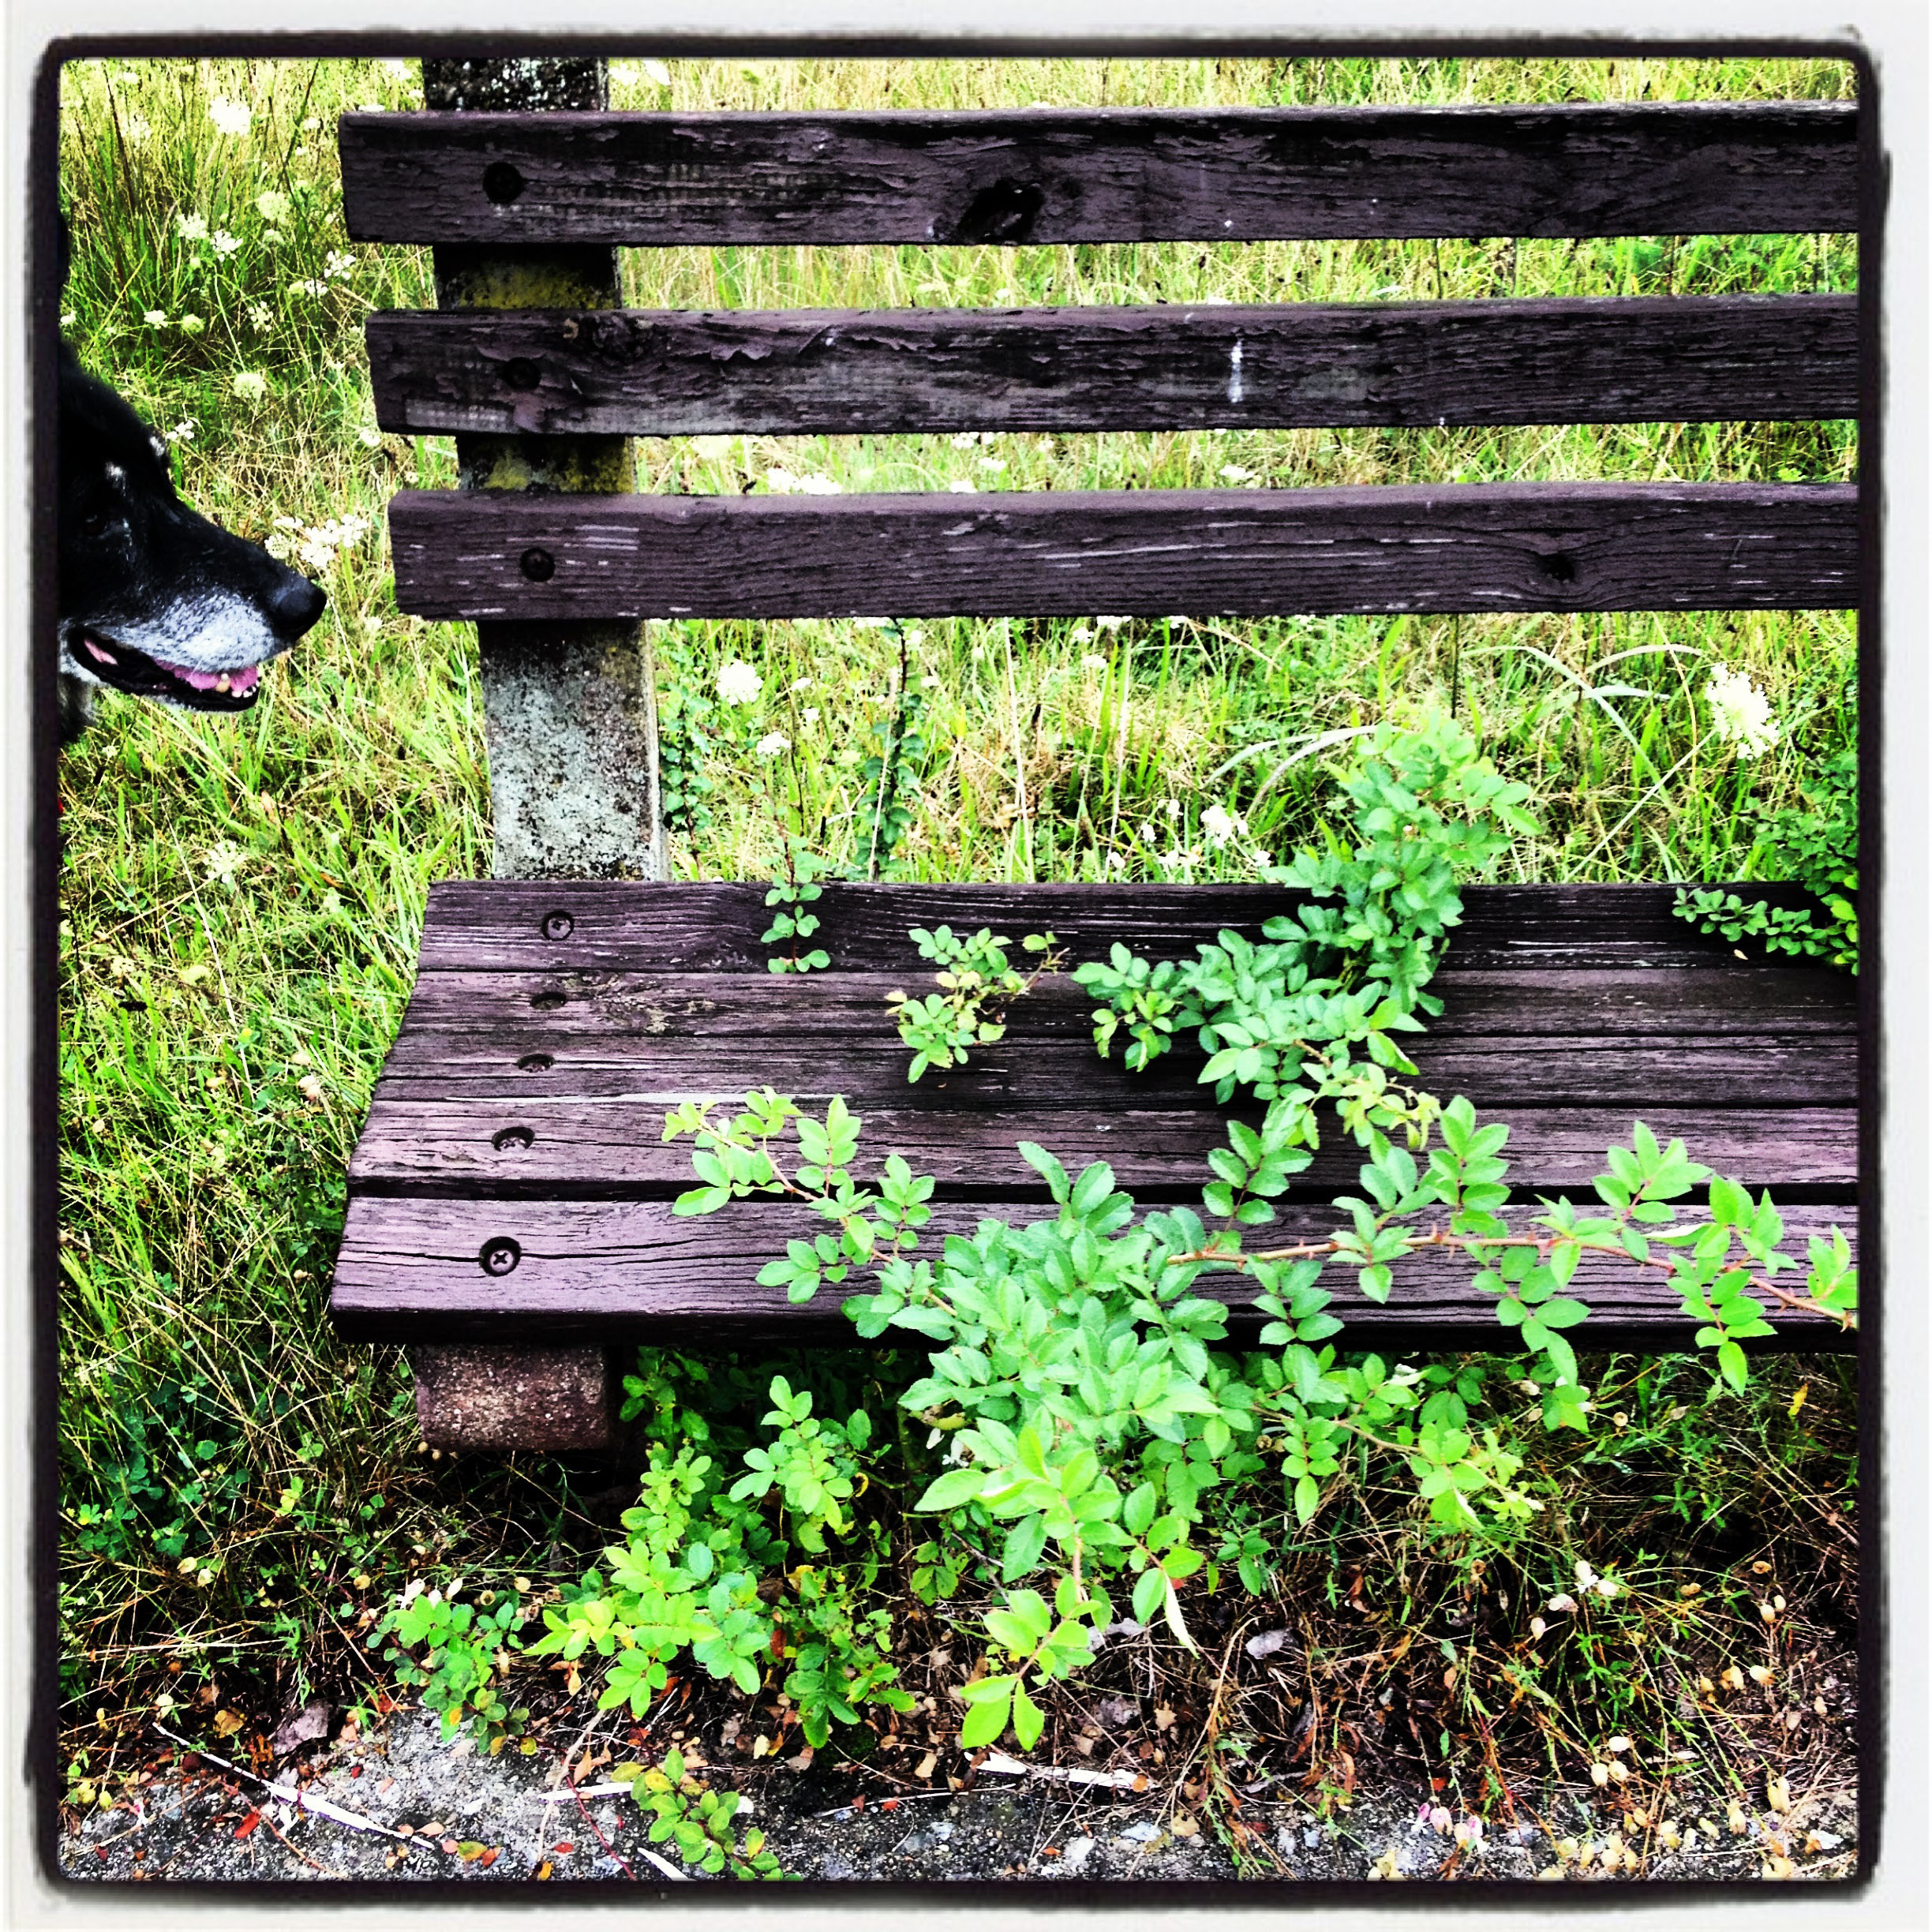 An old overgrown pedestrian's bench along the walkway at Lake Sebago Beach at Harriman State Park New York.